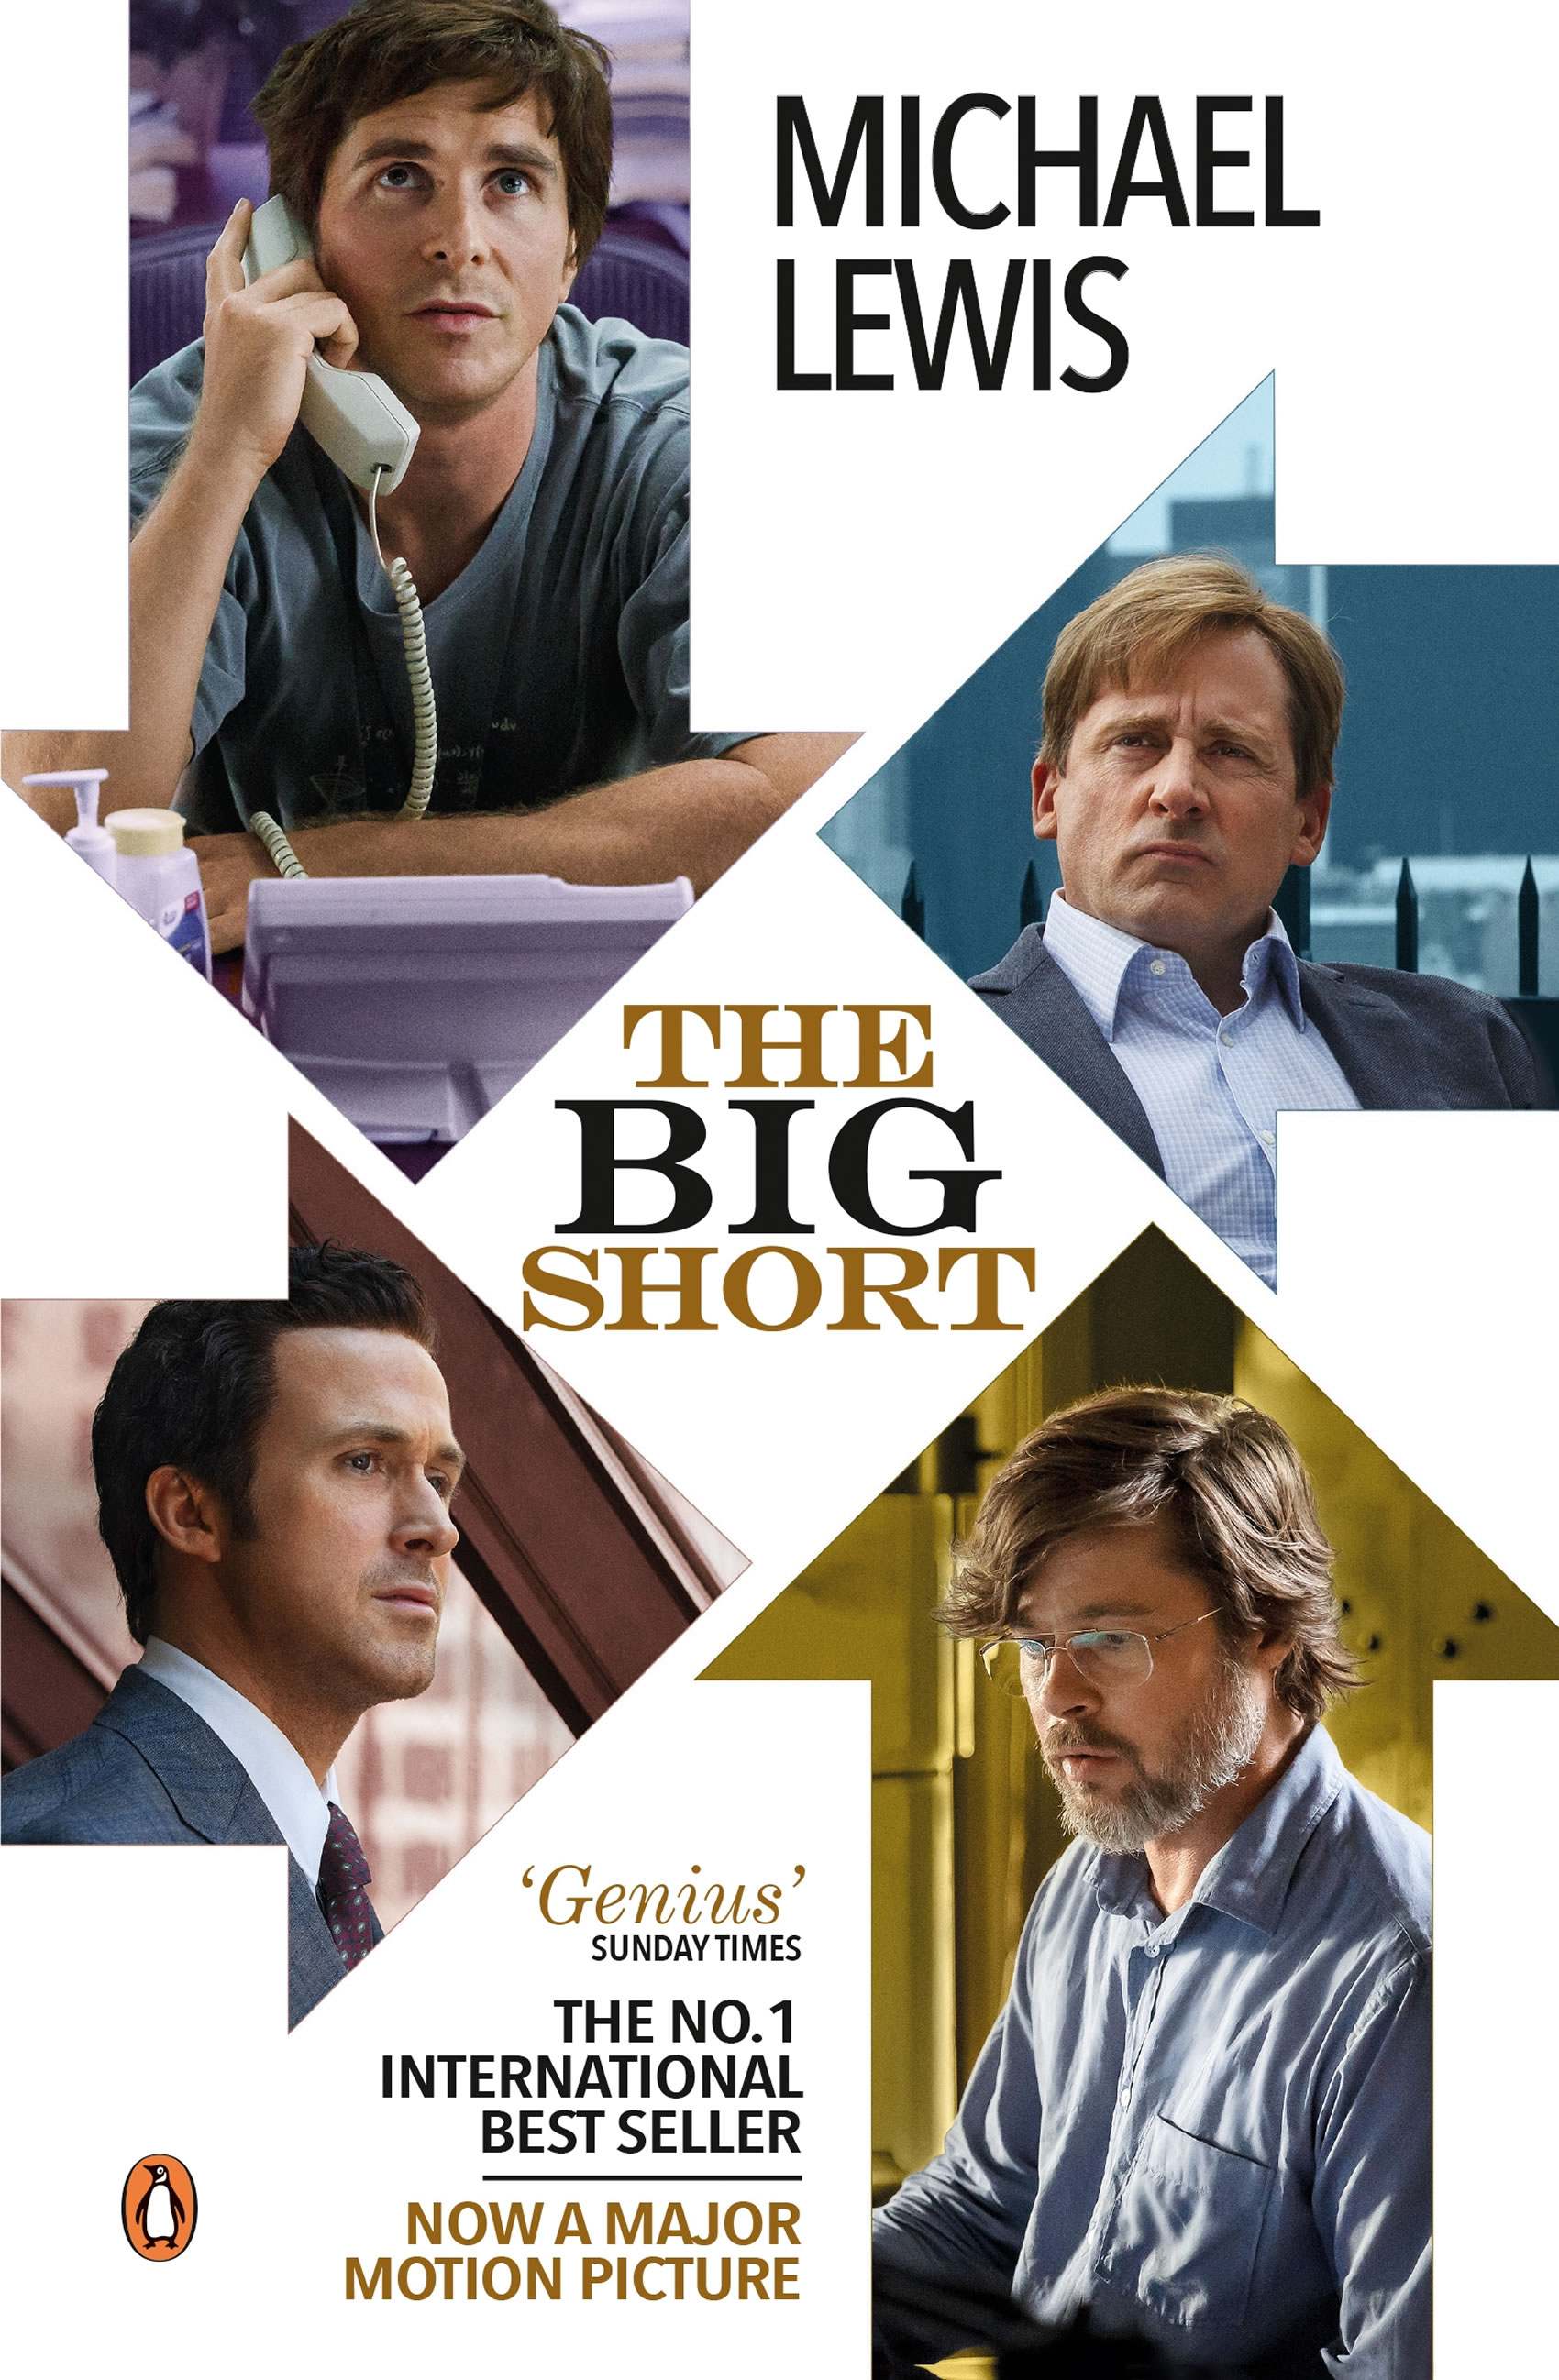 The Big Short by Michael Lewis - Image supplied by Penguin Random House